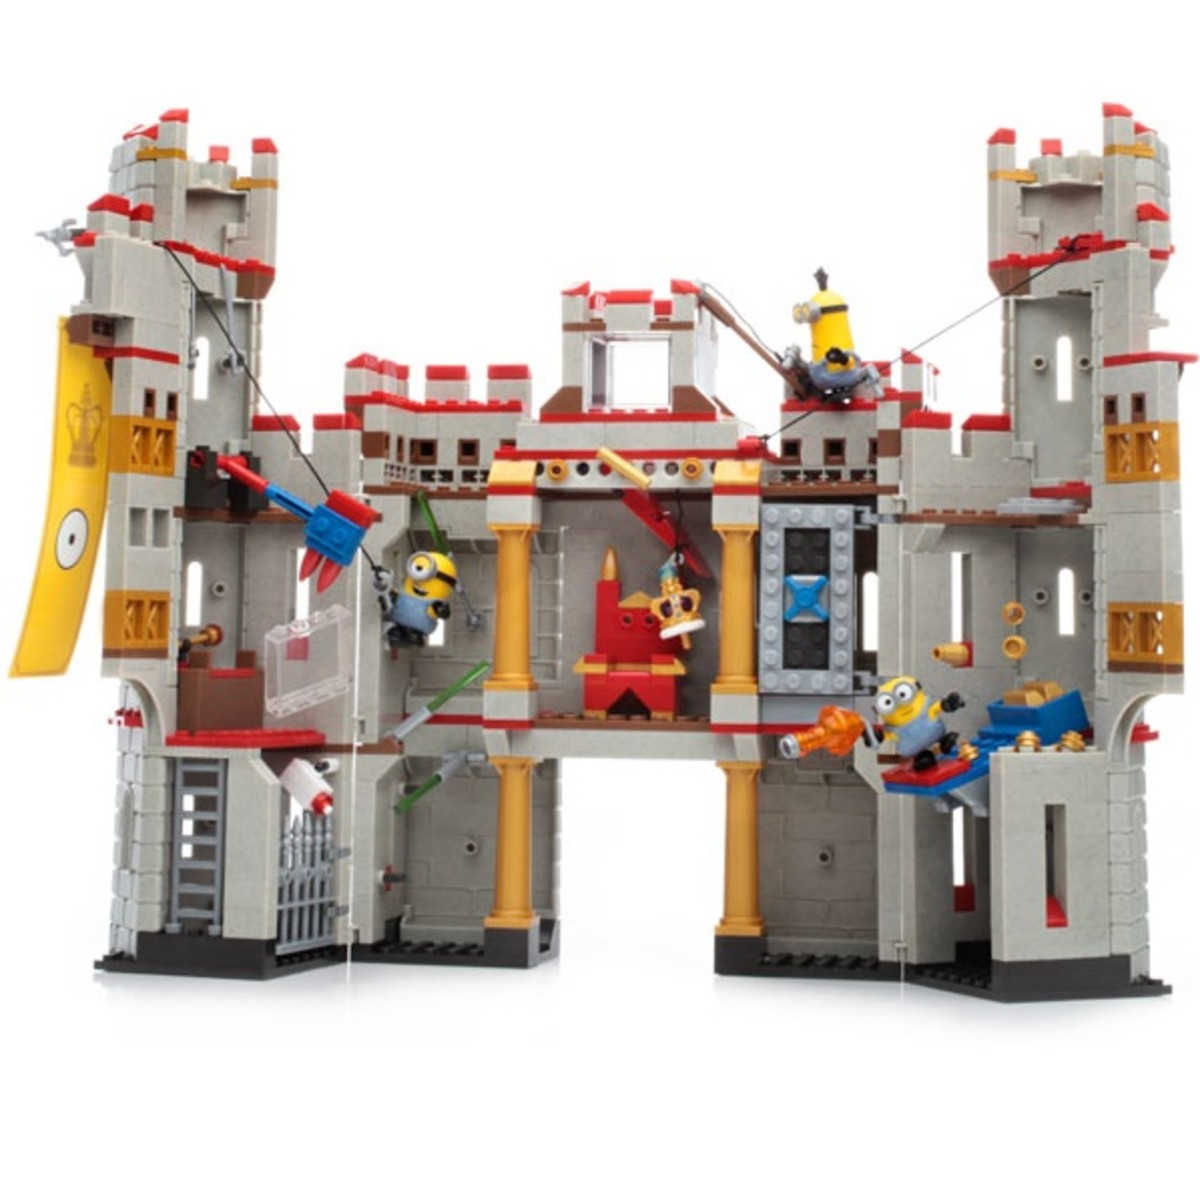 5 Cheap and Good Lego Set Alternatives for Kids | WeHaveKids